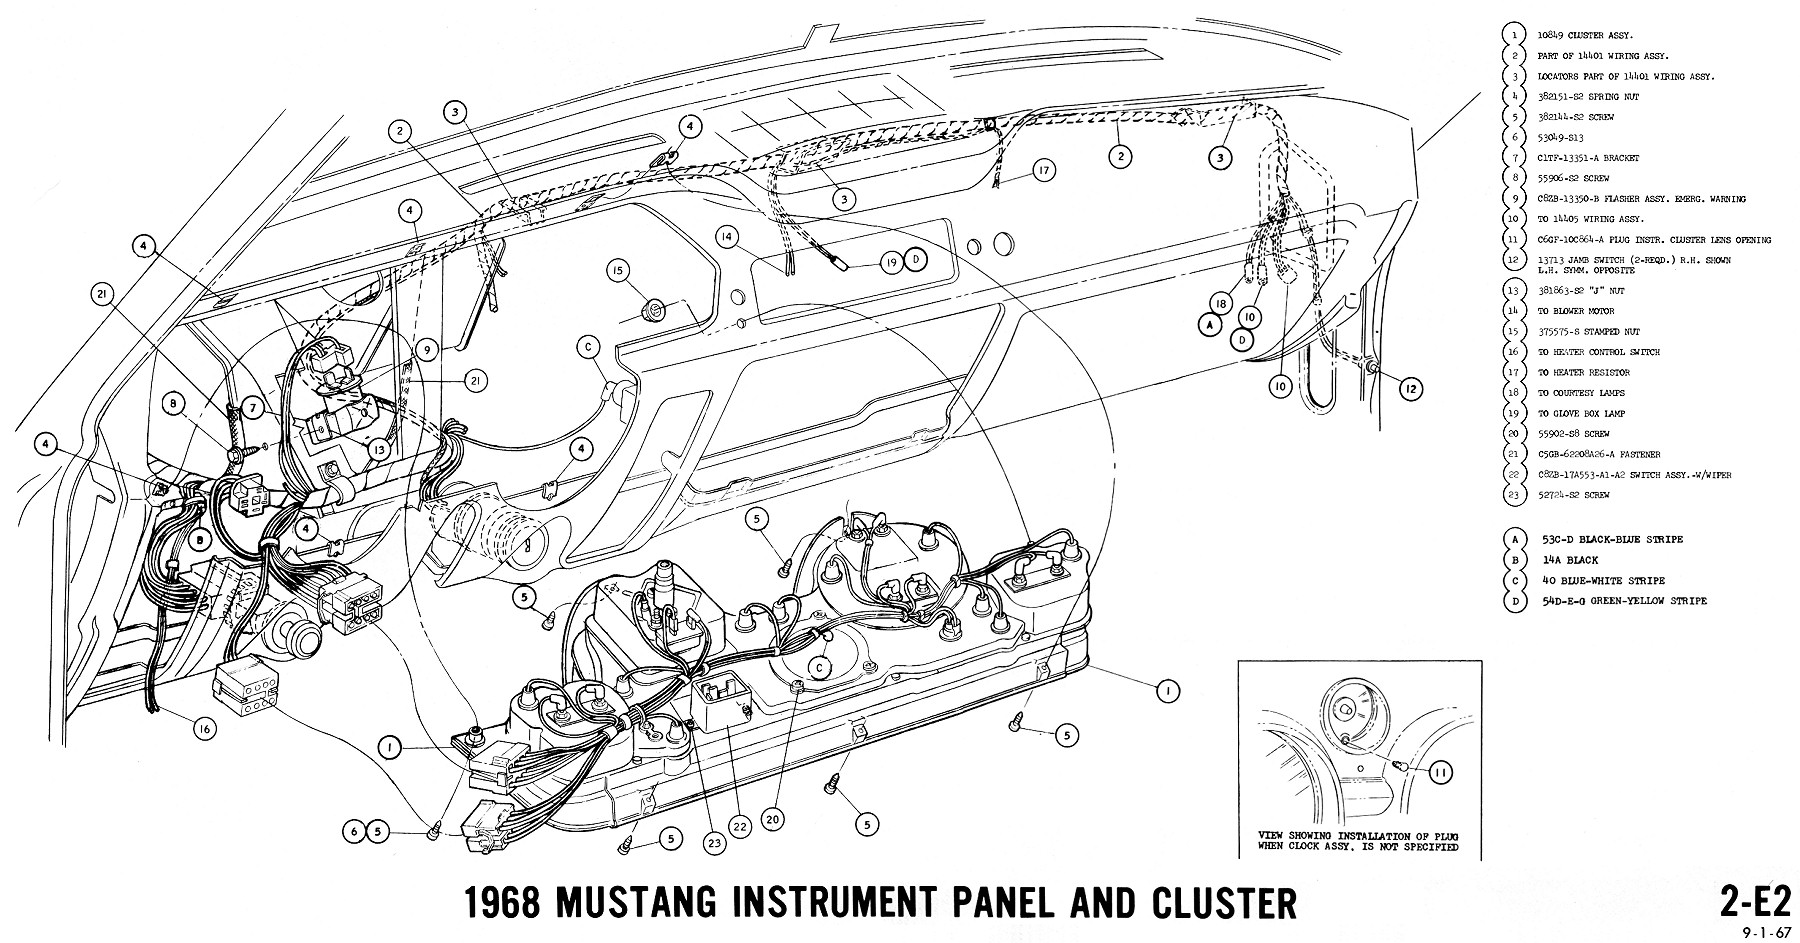 1968 mustang wiring diagram instruments 2 1968 mustang wiring diagrams and vacuum schematics average joe 1965 mustang wiring diagram pdf at edmiracle.co